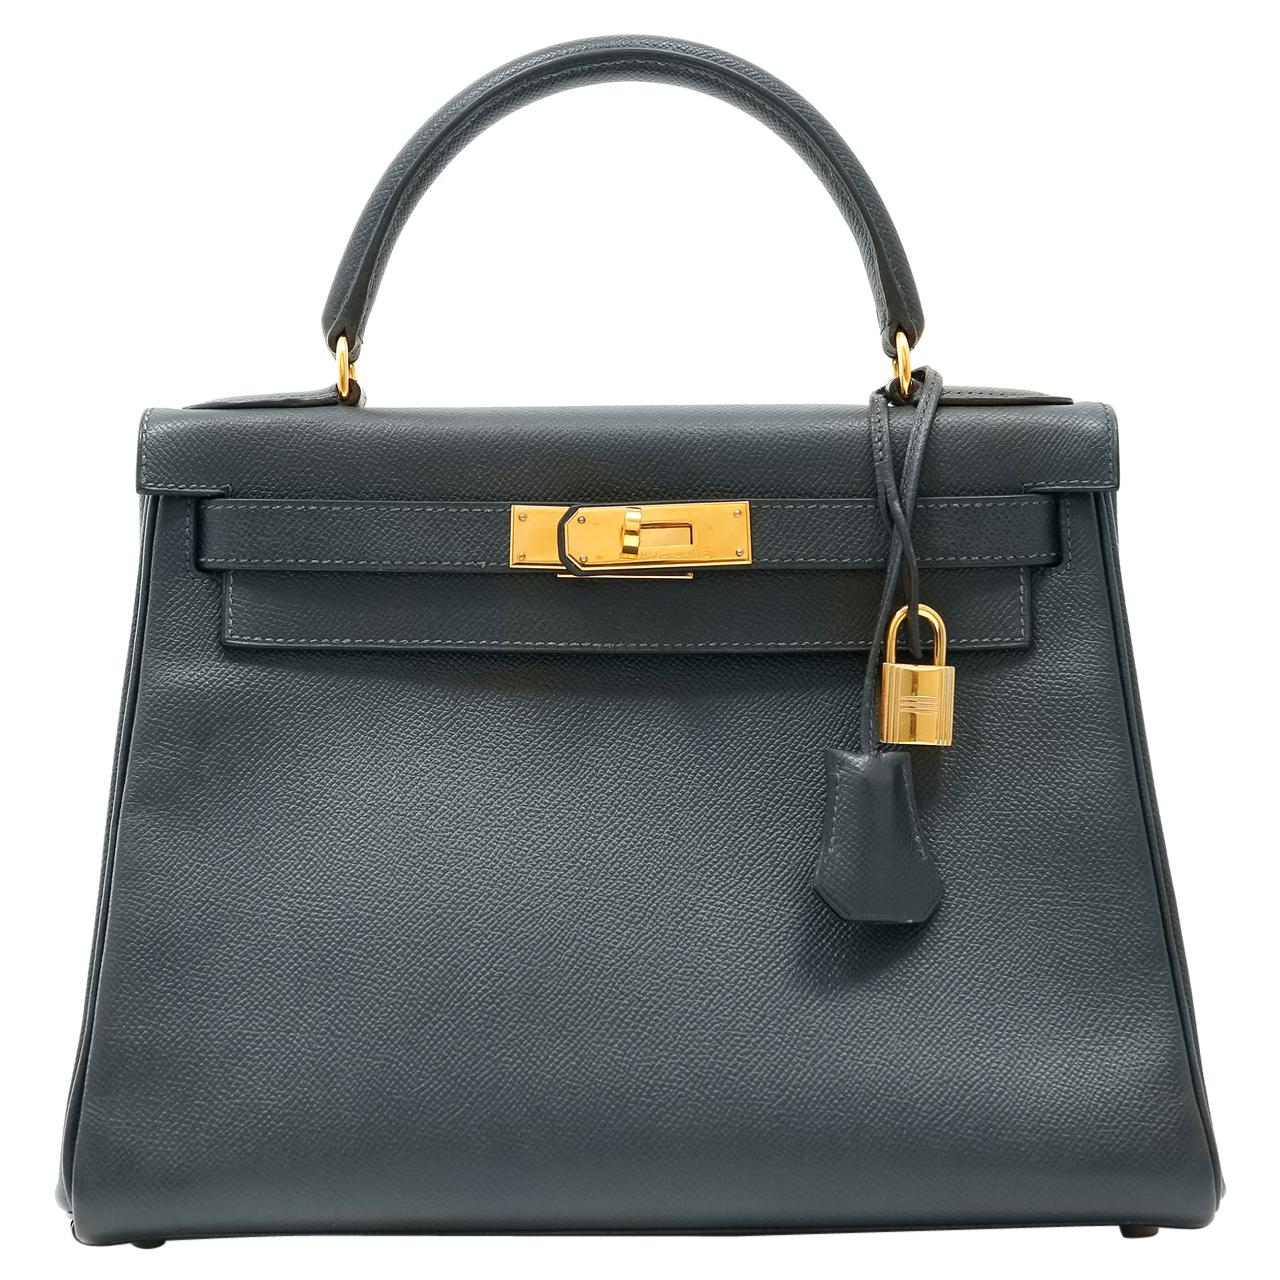 Hermès Midnight Blue Epsom Leather 28 cm Kelly with Gold Hardware